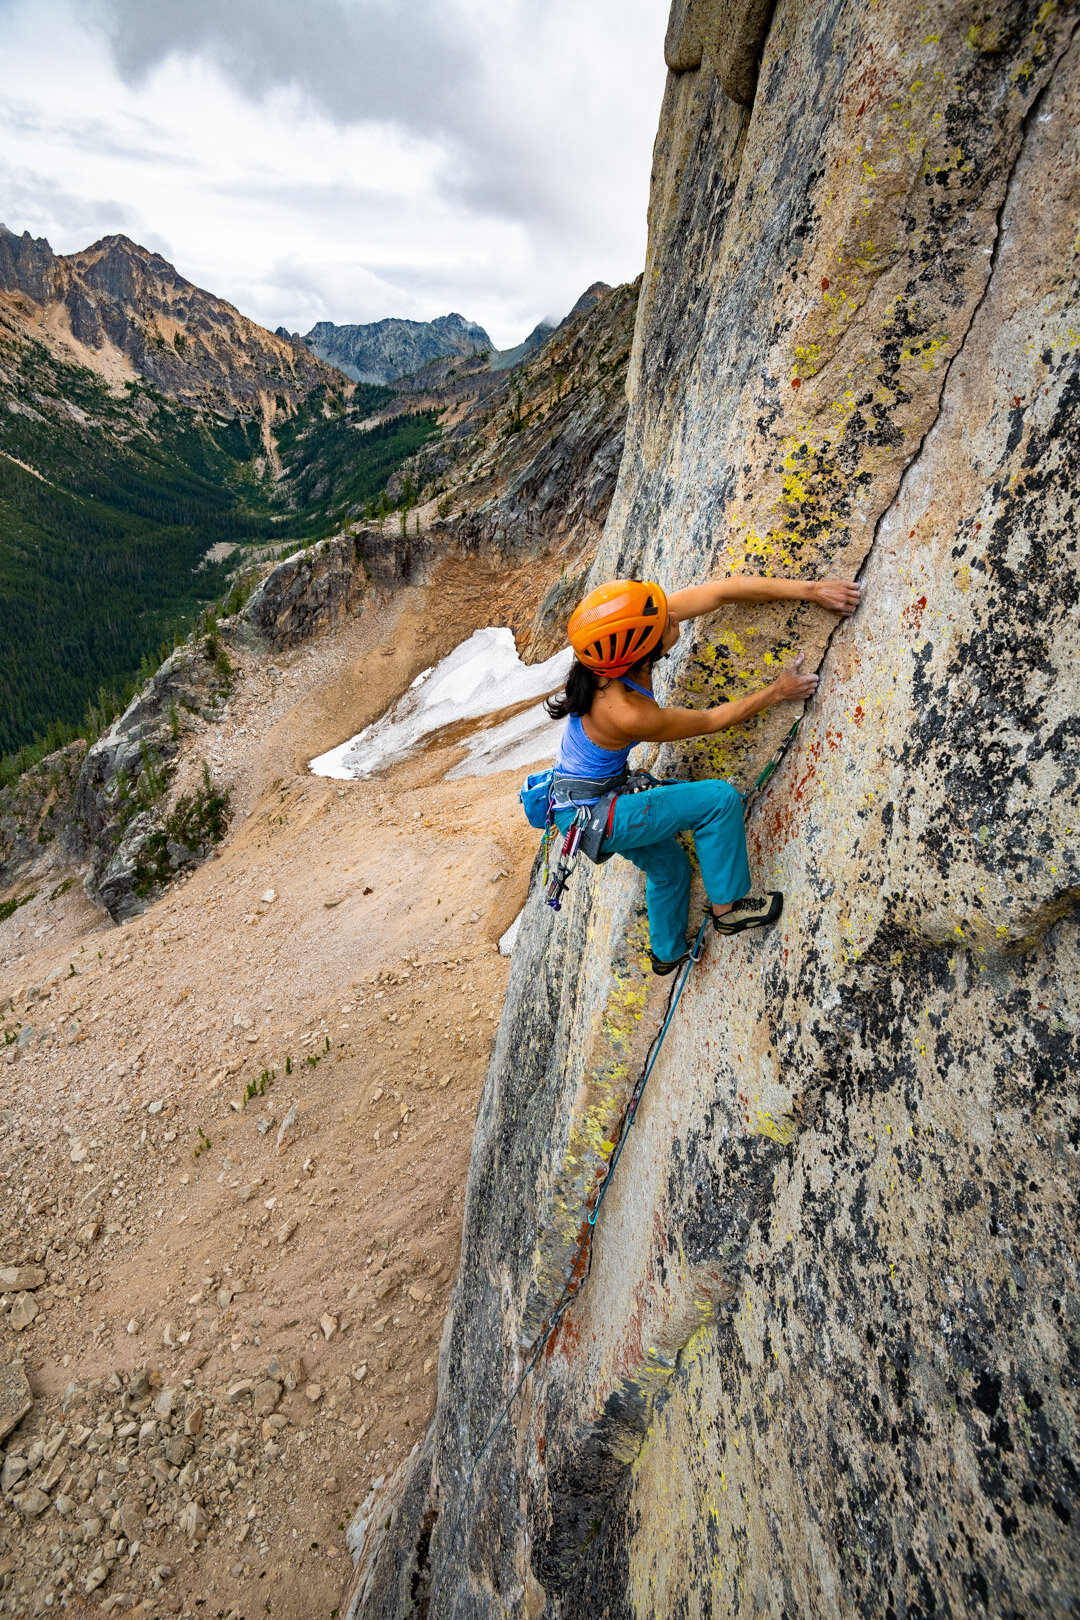 SJ on the crux pitch. Photo Austin Siadak.